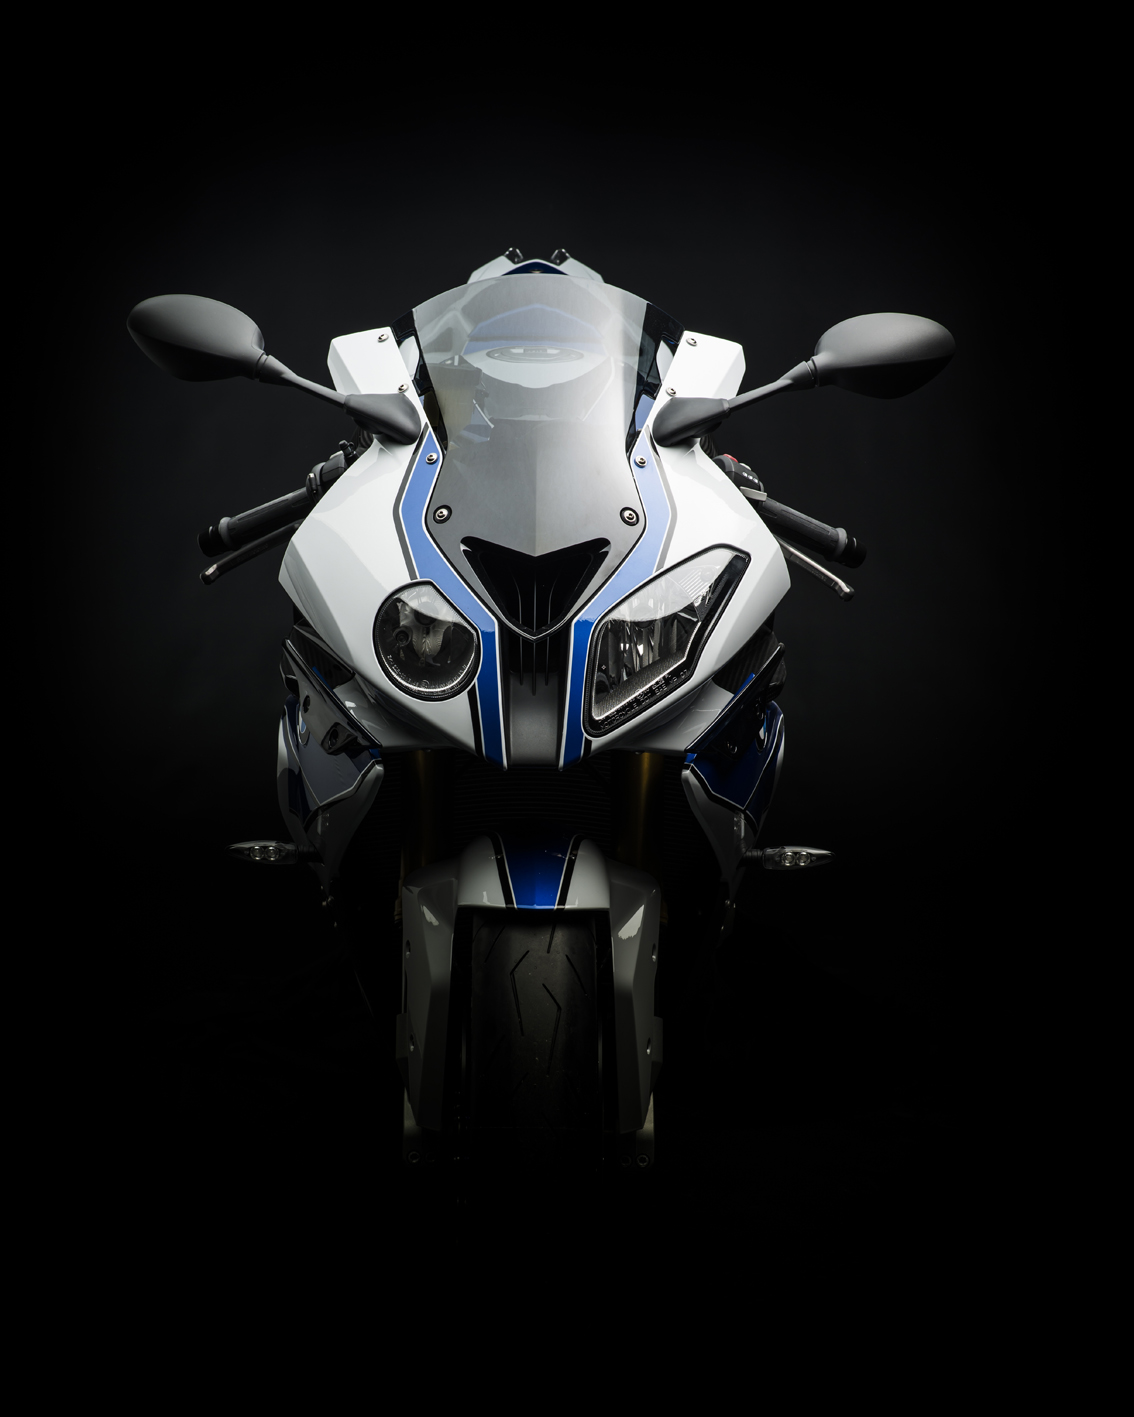 Bmw Hp4 bmw hp motorcycles might just make a comeback - autoevolution